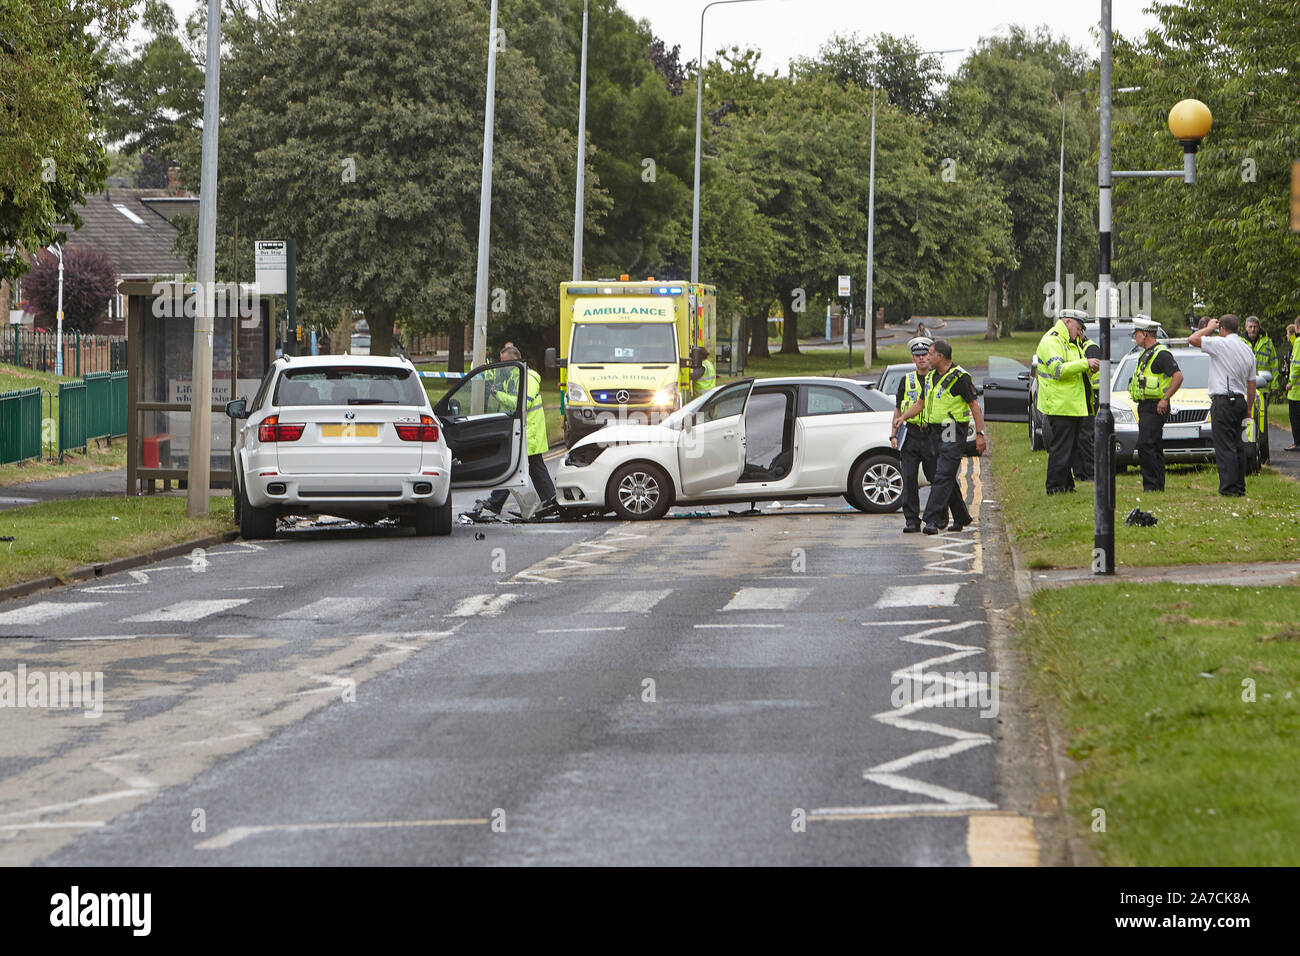 28th July 2016 - Emergency services attend a serious road traffic accident, RTA, following an head on car crash in West Hul, East Yorkshire, UK. Stock Photo